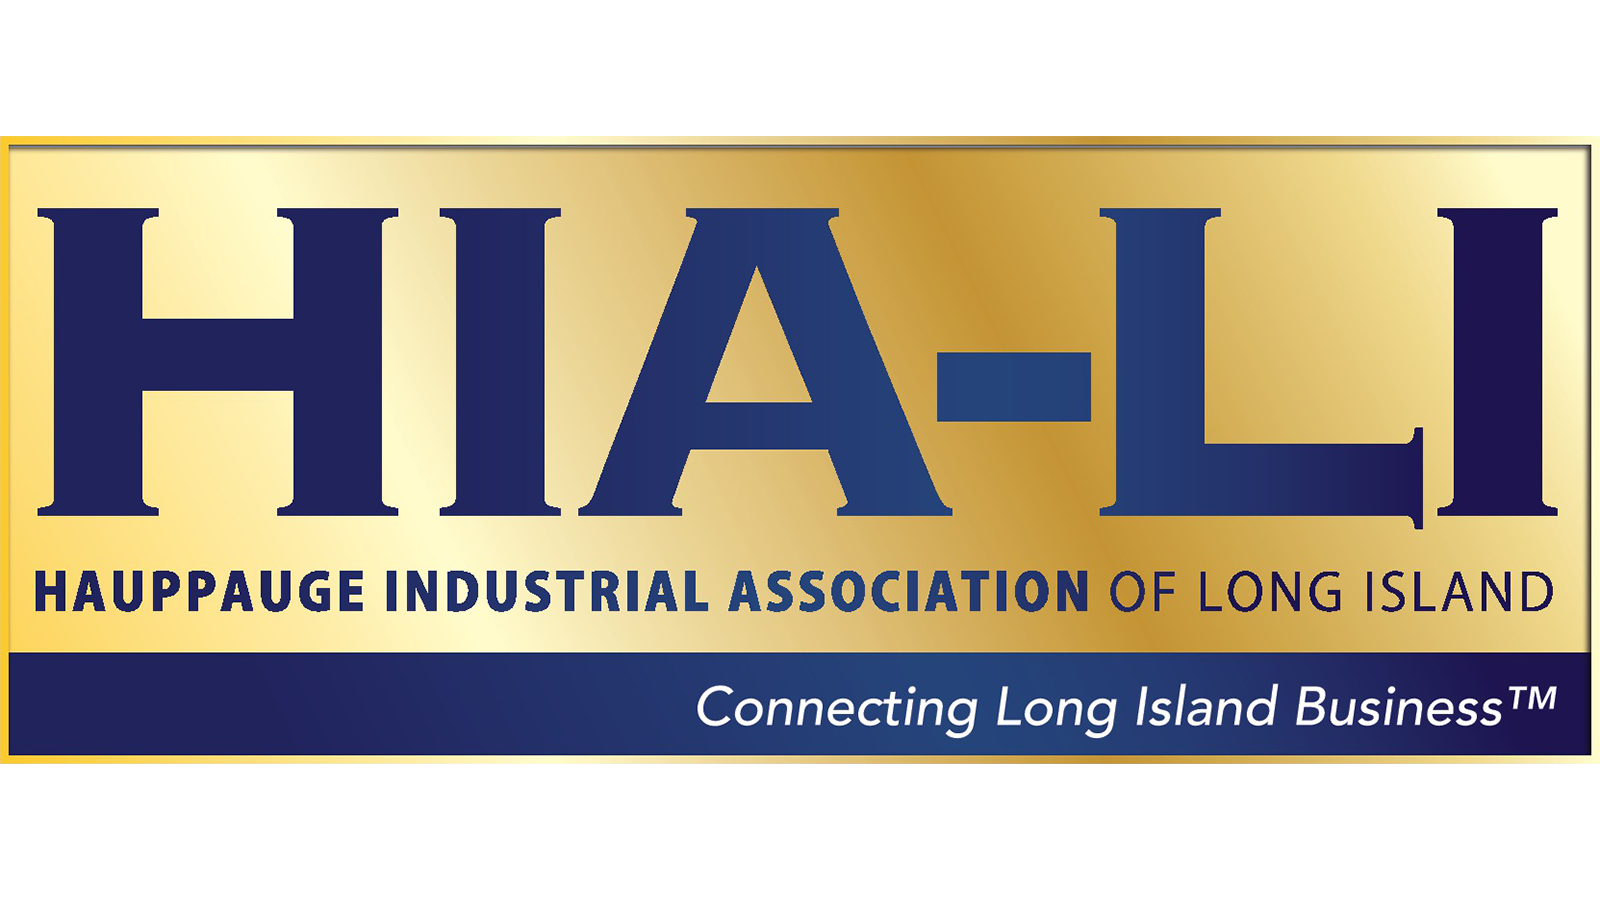 Hauppauge Industrial Association of Long Island